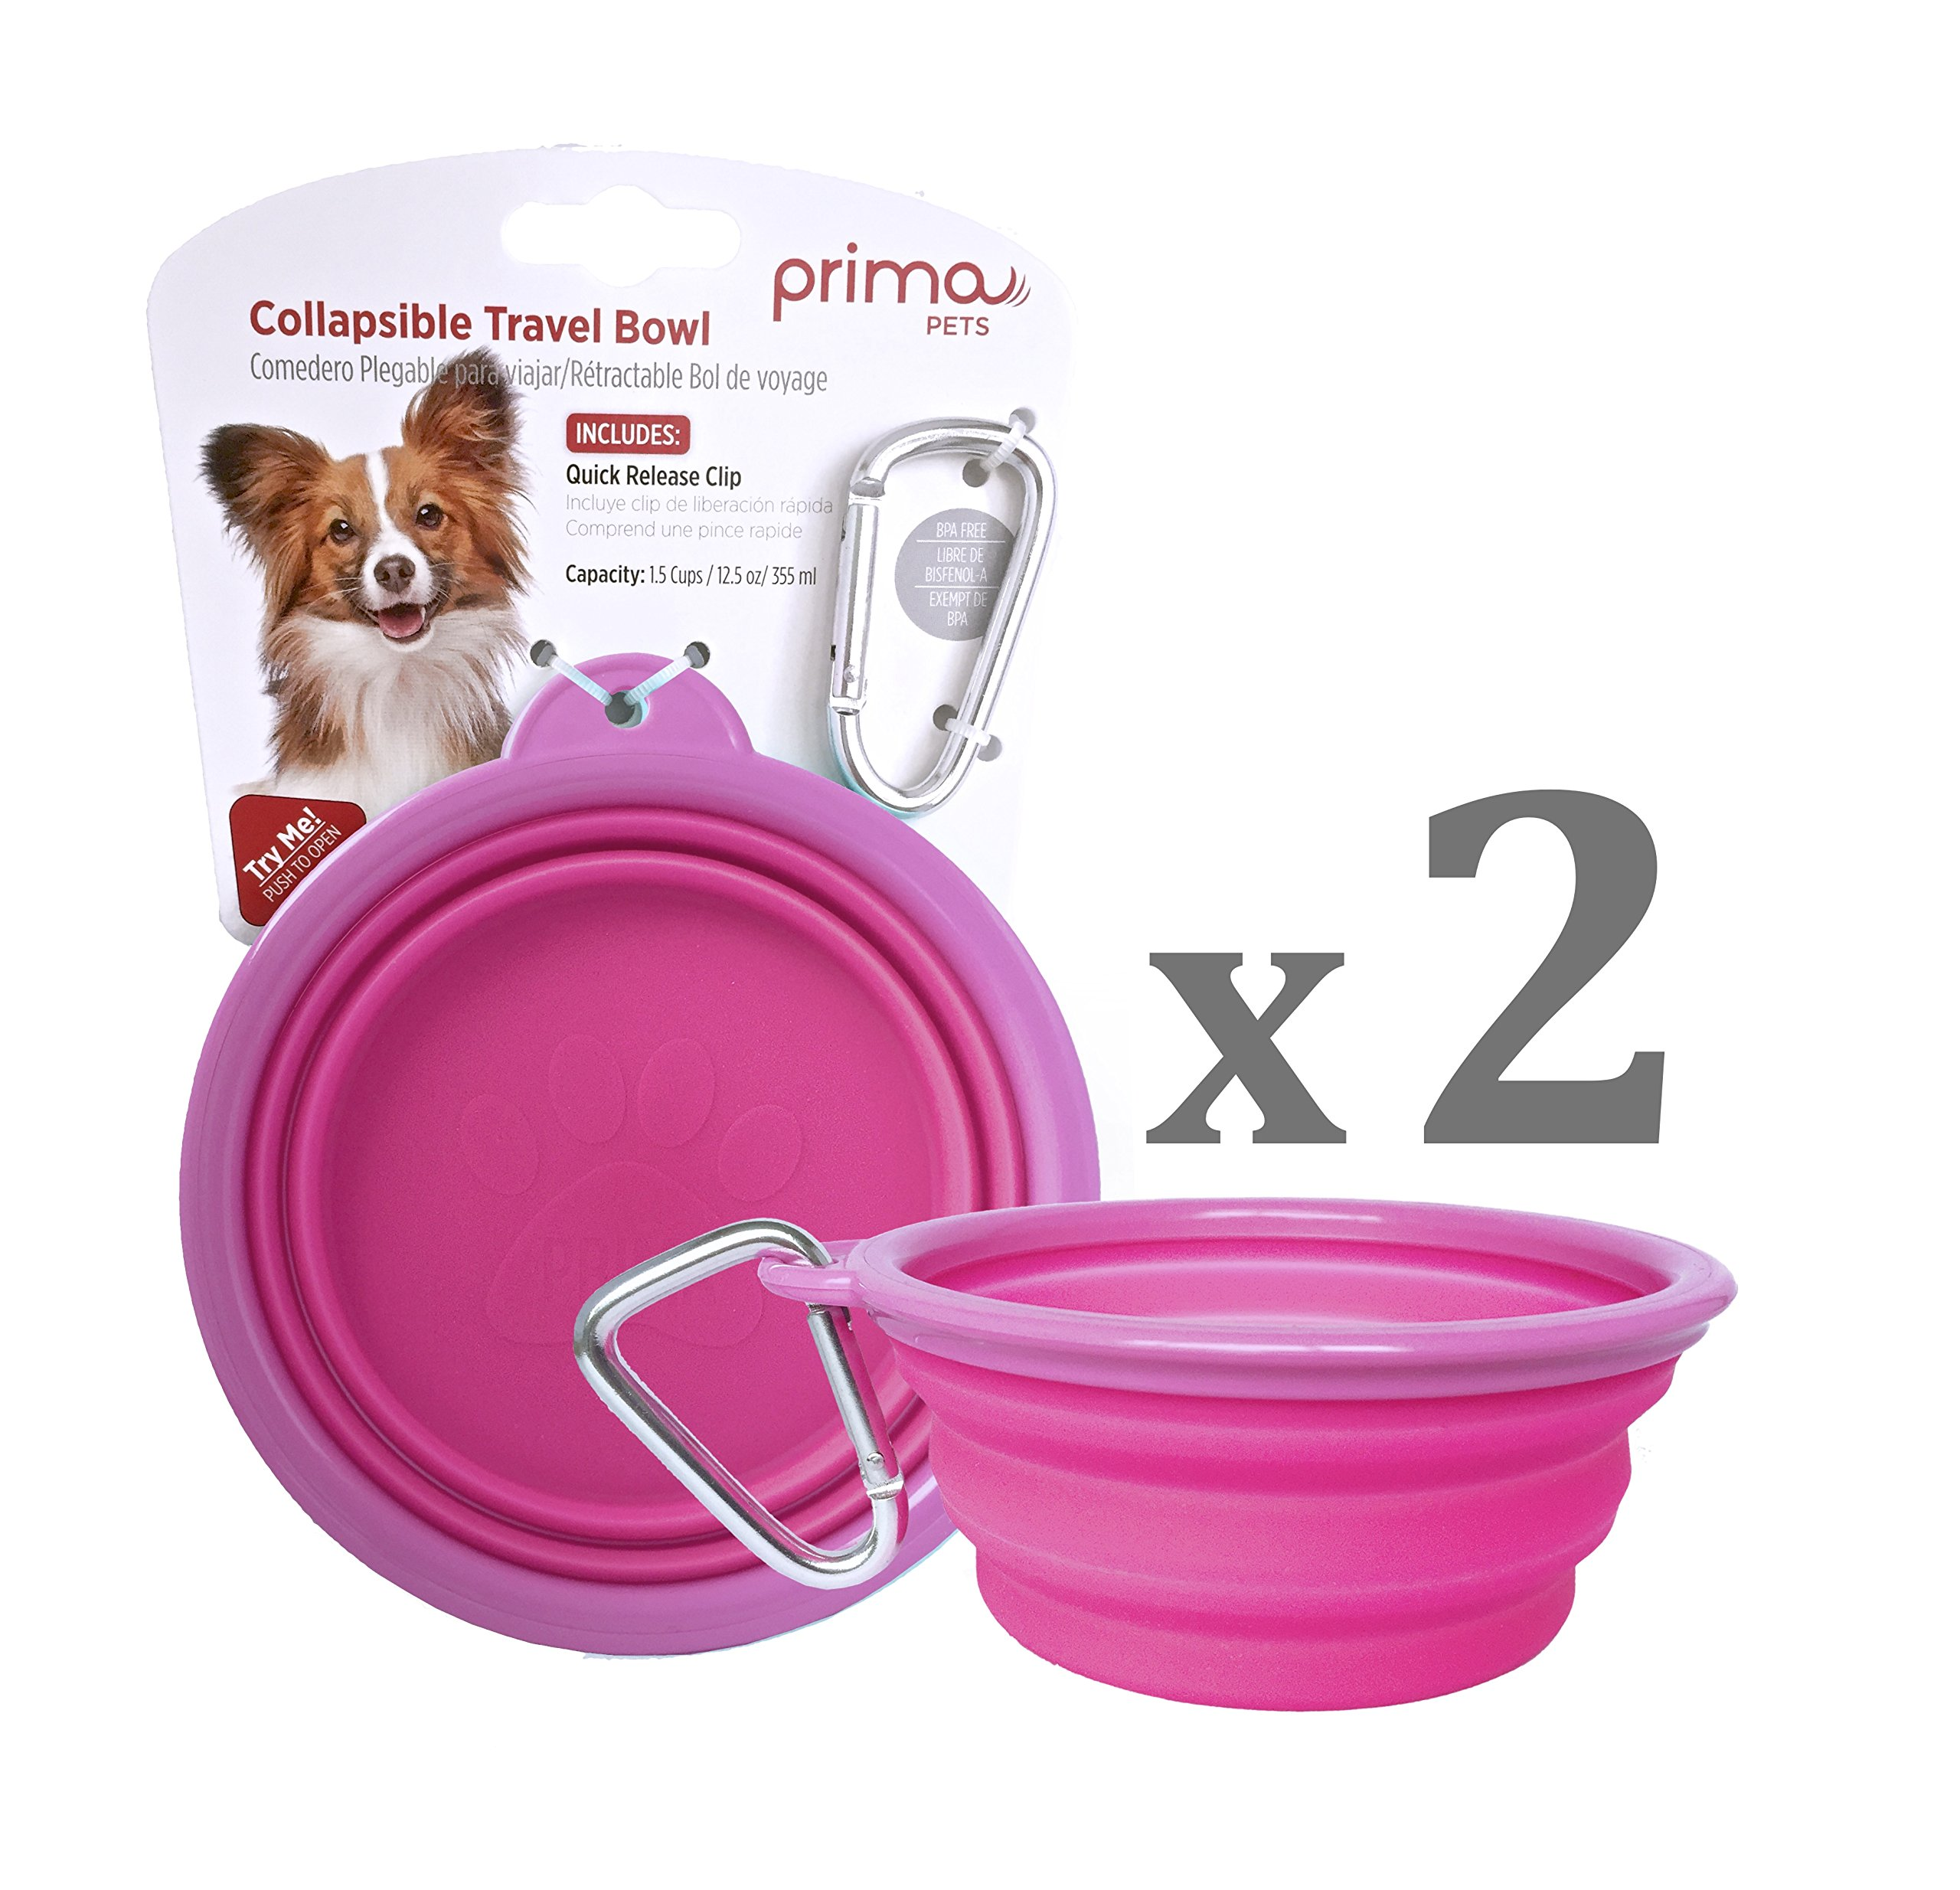 SALE: Prima Pet Collapsible Silicone Water Travel Bowl with Clip for Dog and Cat, Portable and Durable Pop-up Feeder for Convenient On-the-go Feeding – Size: SMALL (1.5 Cups) PINK – 2 PACK